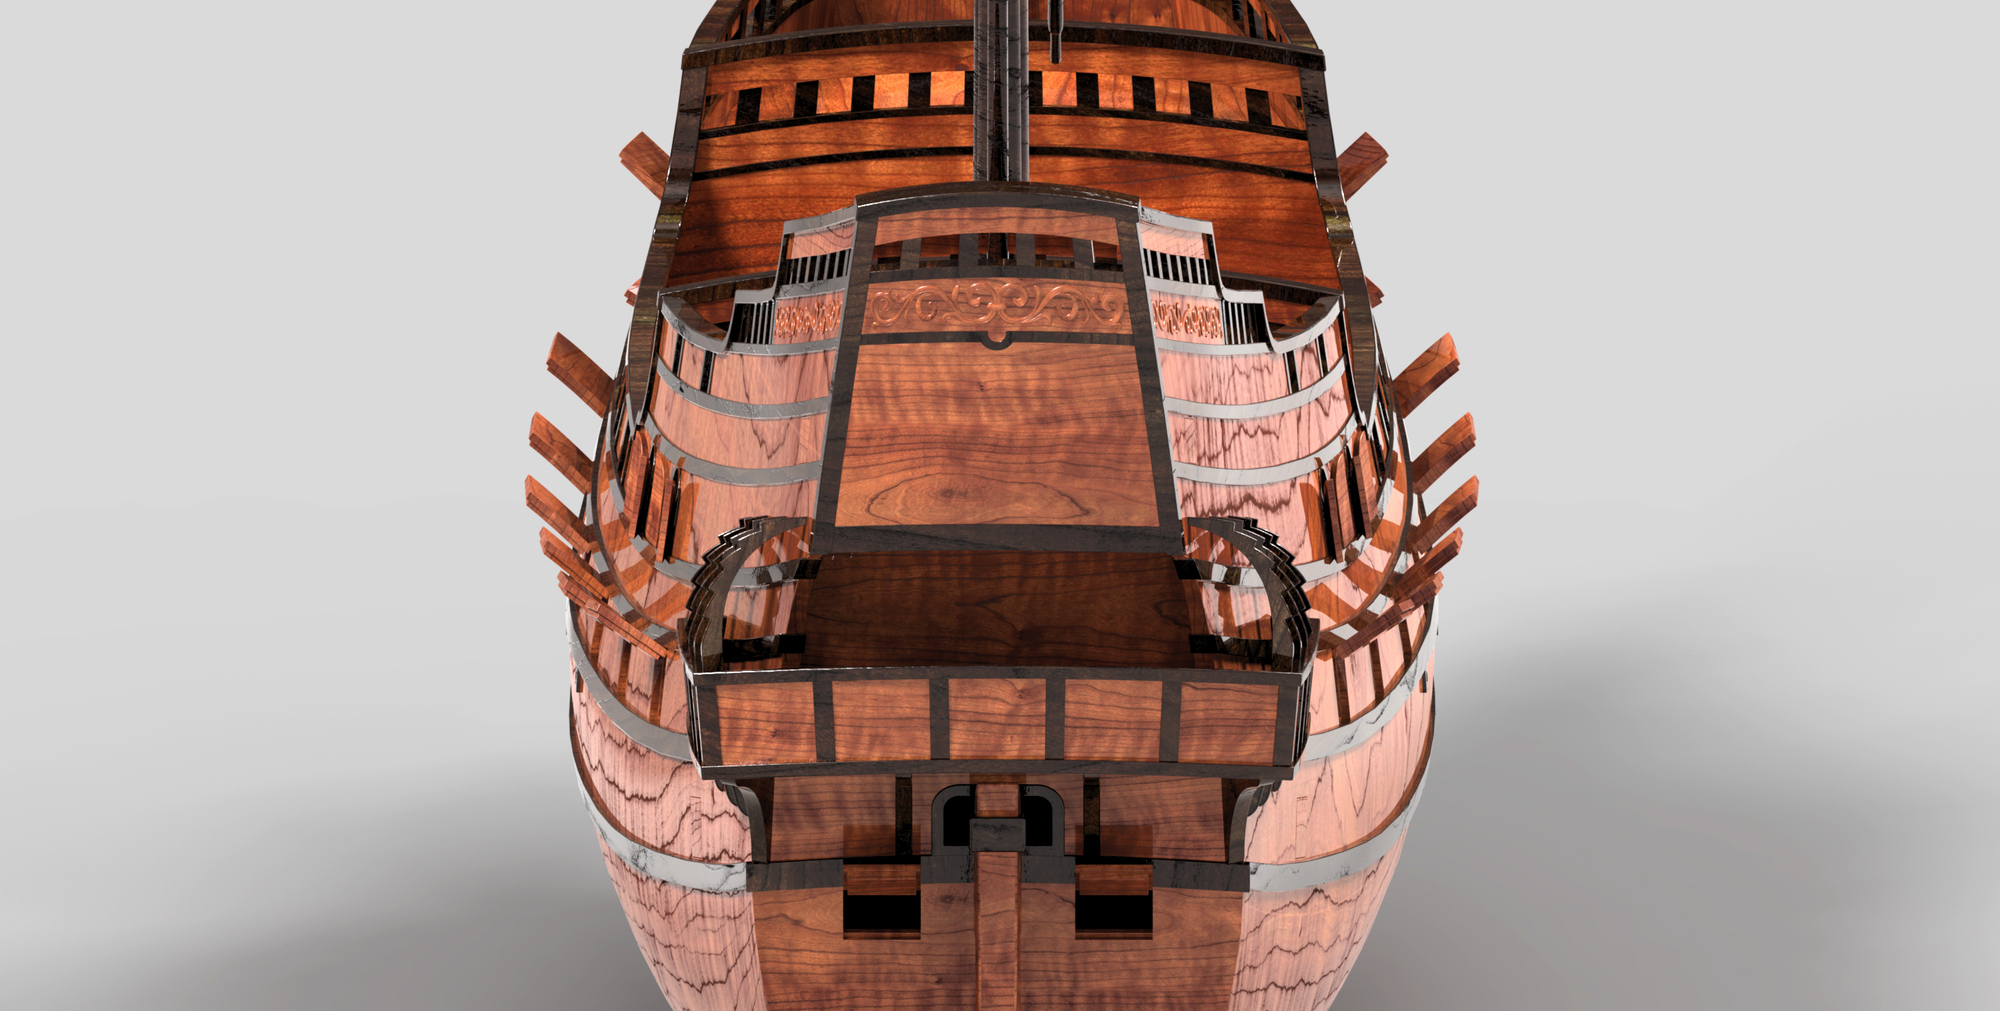 Galleon_view_9